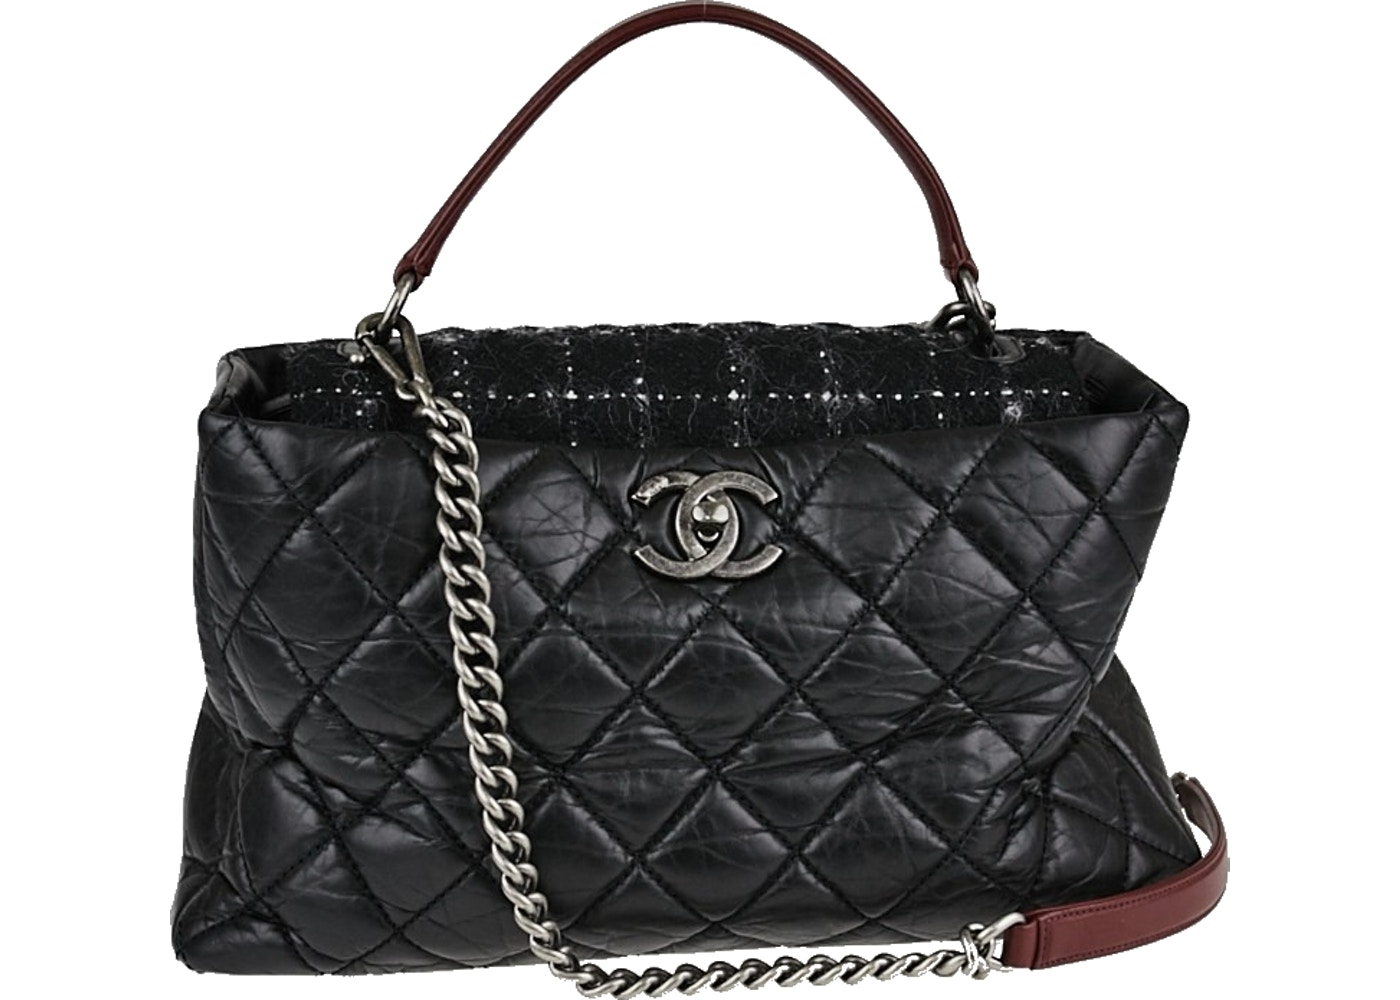 6e5ae4e5c346 Sell. or Ask. View All Bids. Chanel Shopping Bag Portobello Quilted Glazed  Large Black White